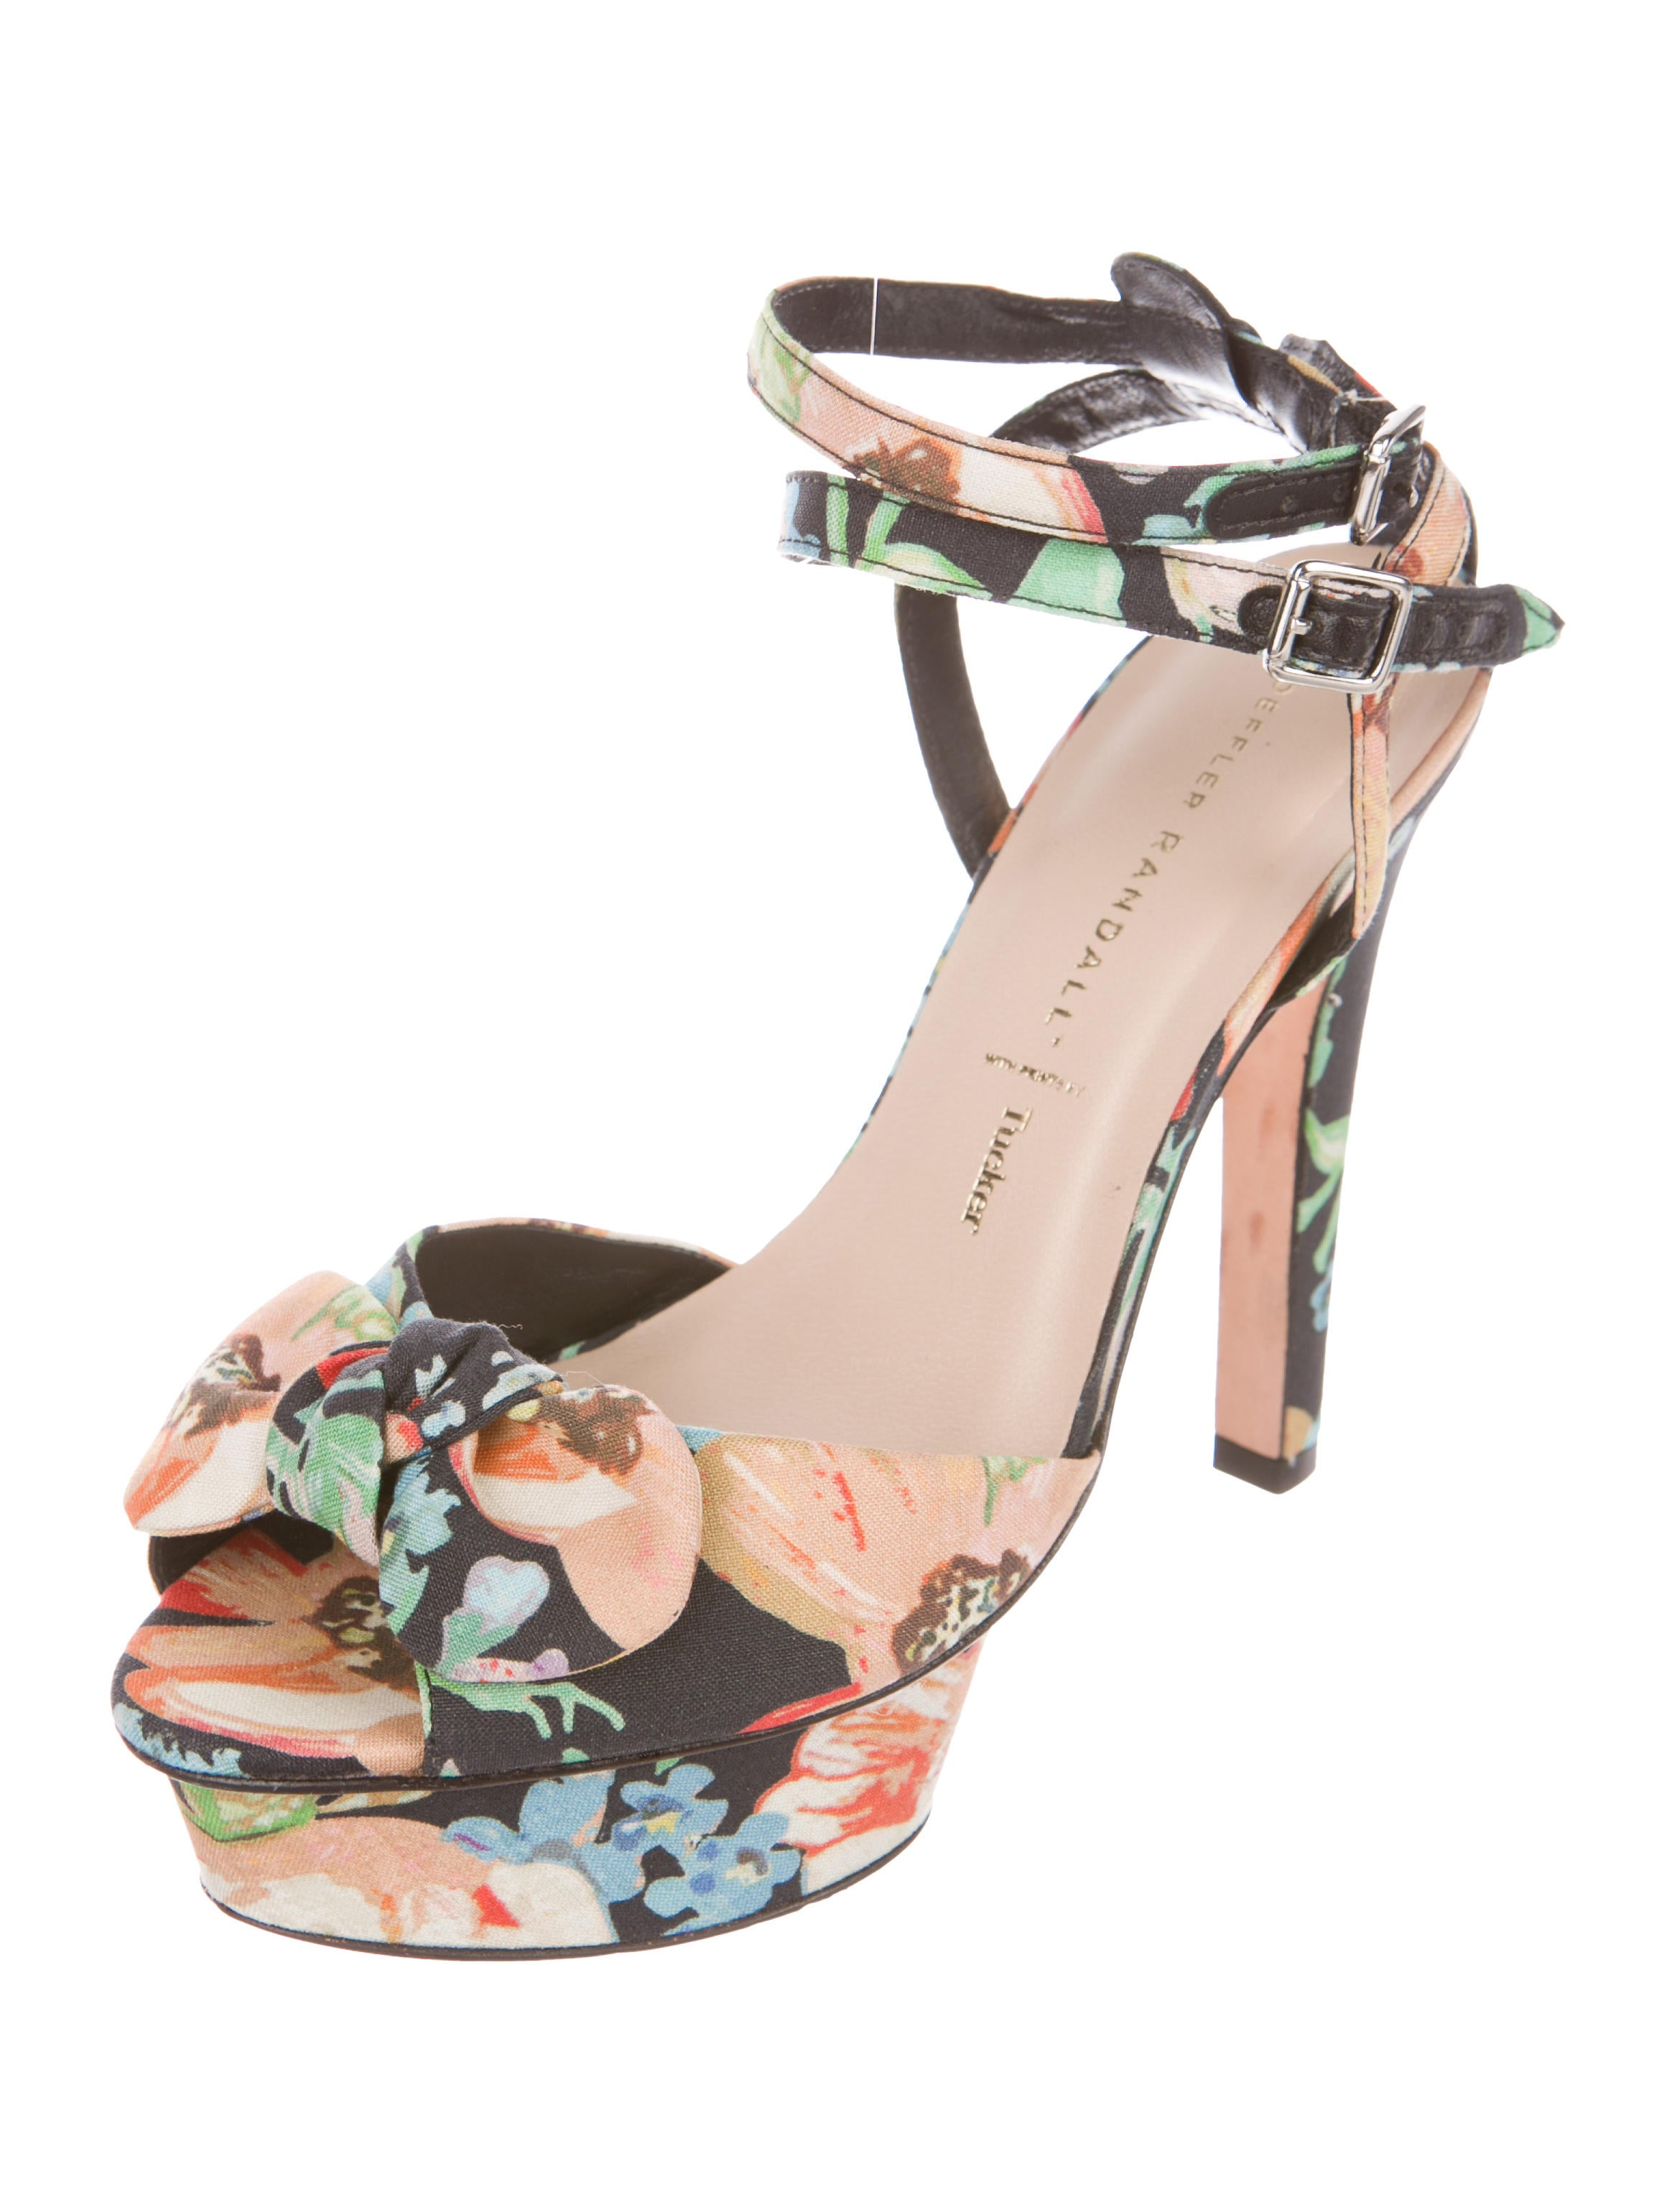 Loeffler Randall x Tucker Floral Platform Sandals cheap sale clearance store extremely online outlet good selling cheap price wholesale PKeNnrmFrQ